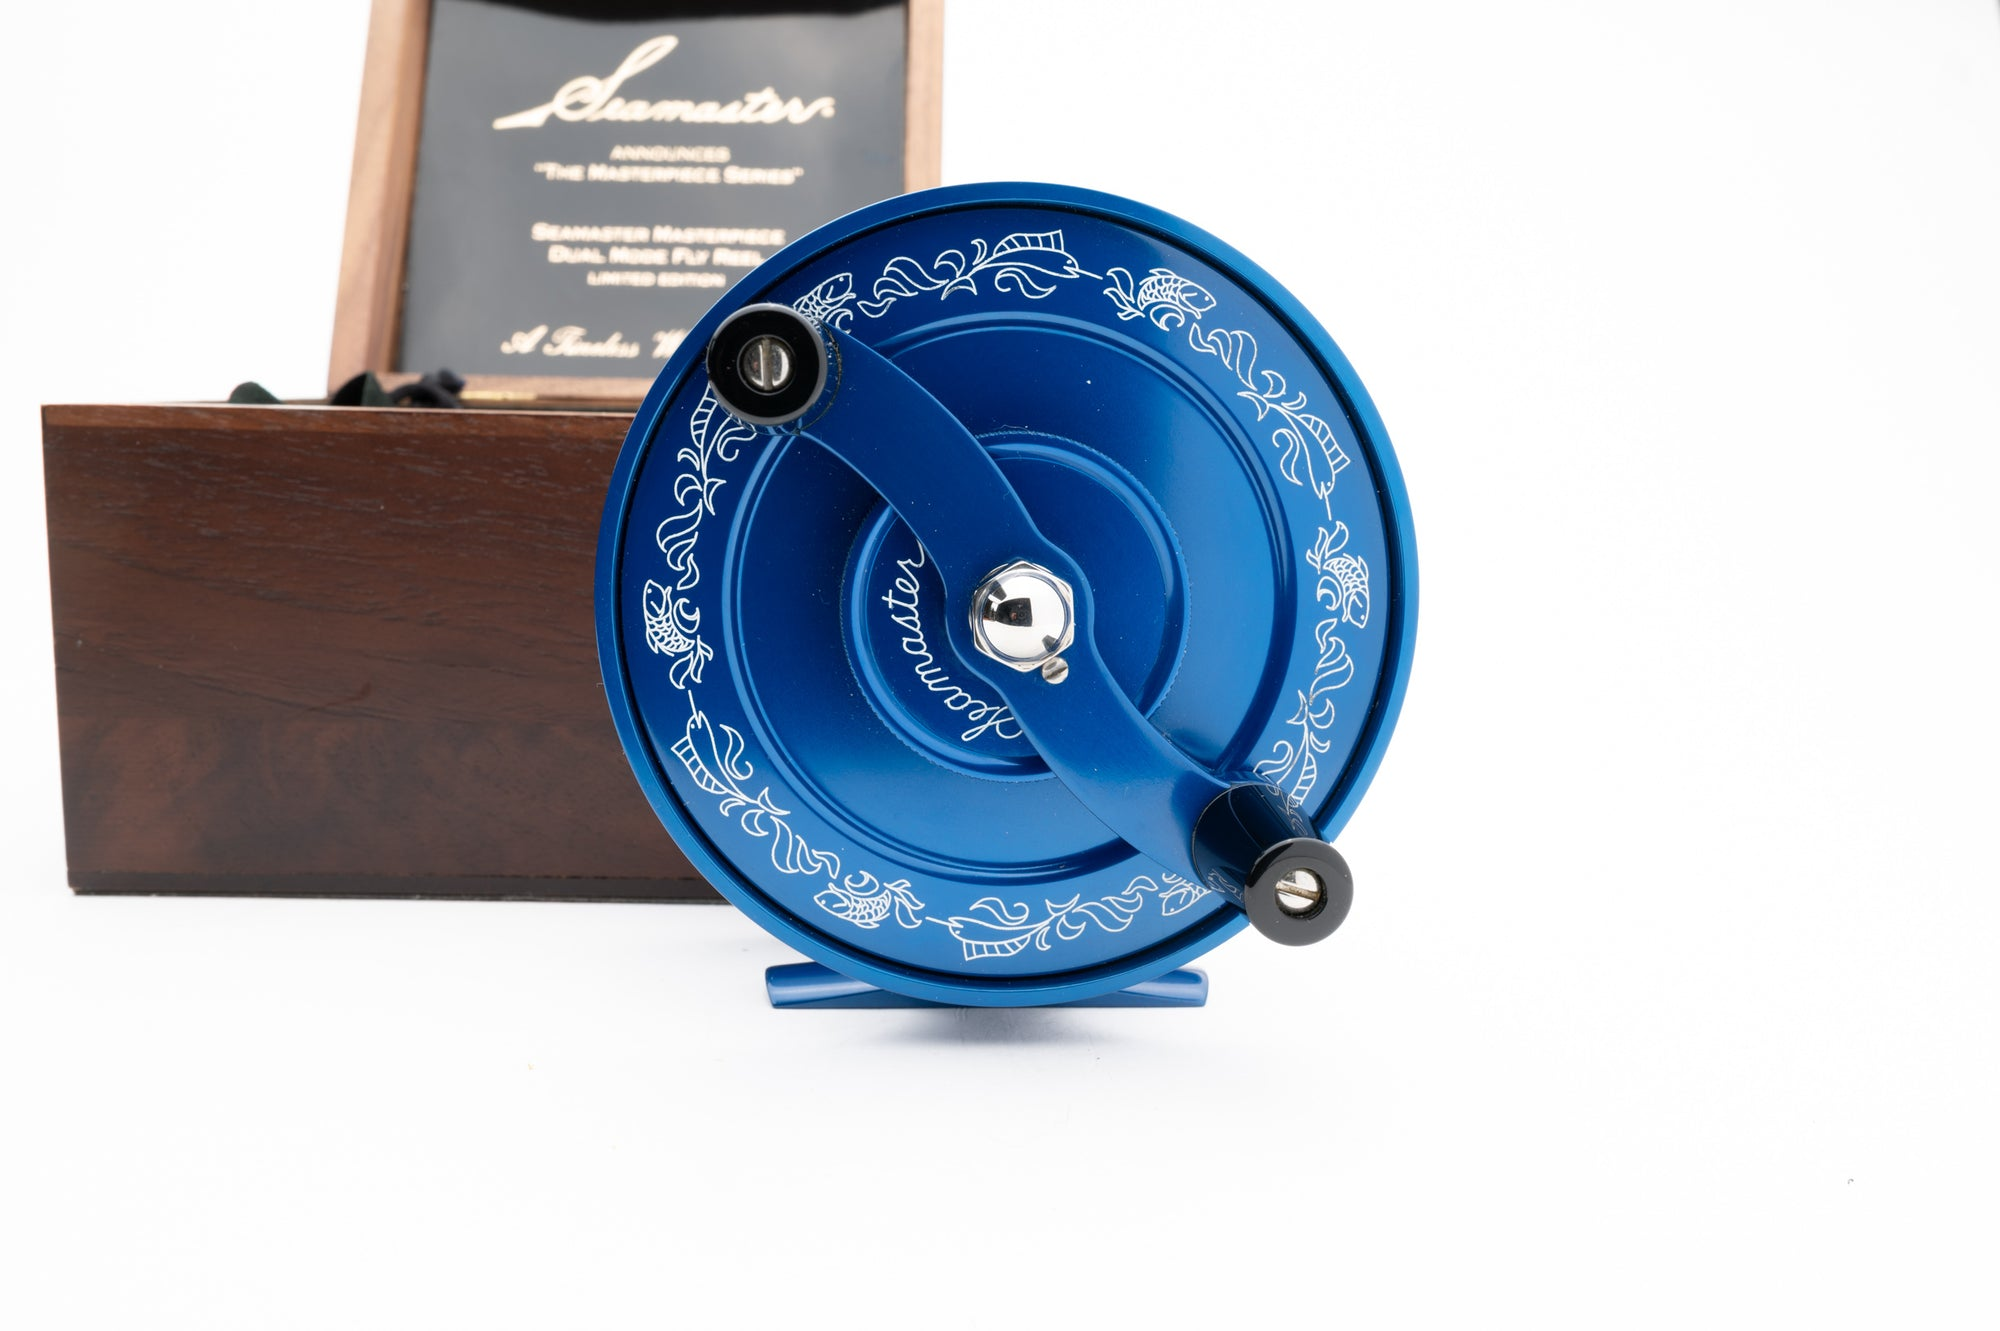 Seamaster Masterpiece Series Limited Edition Fly Reel